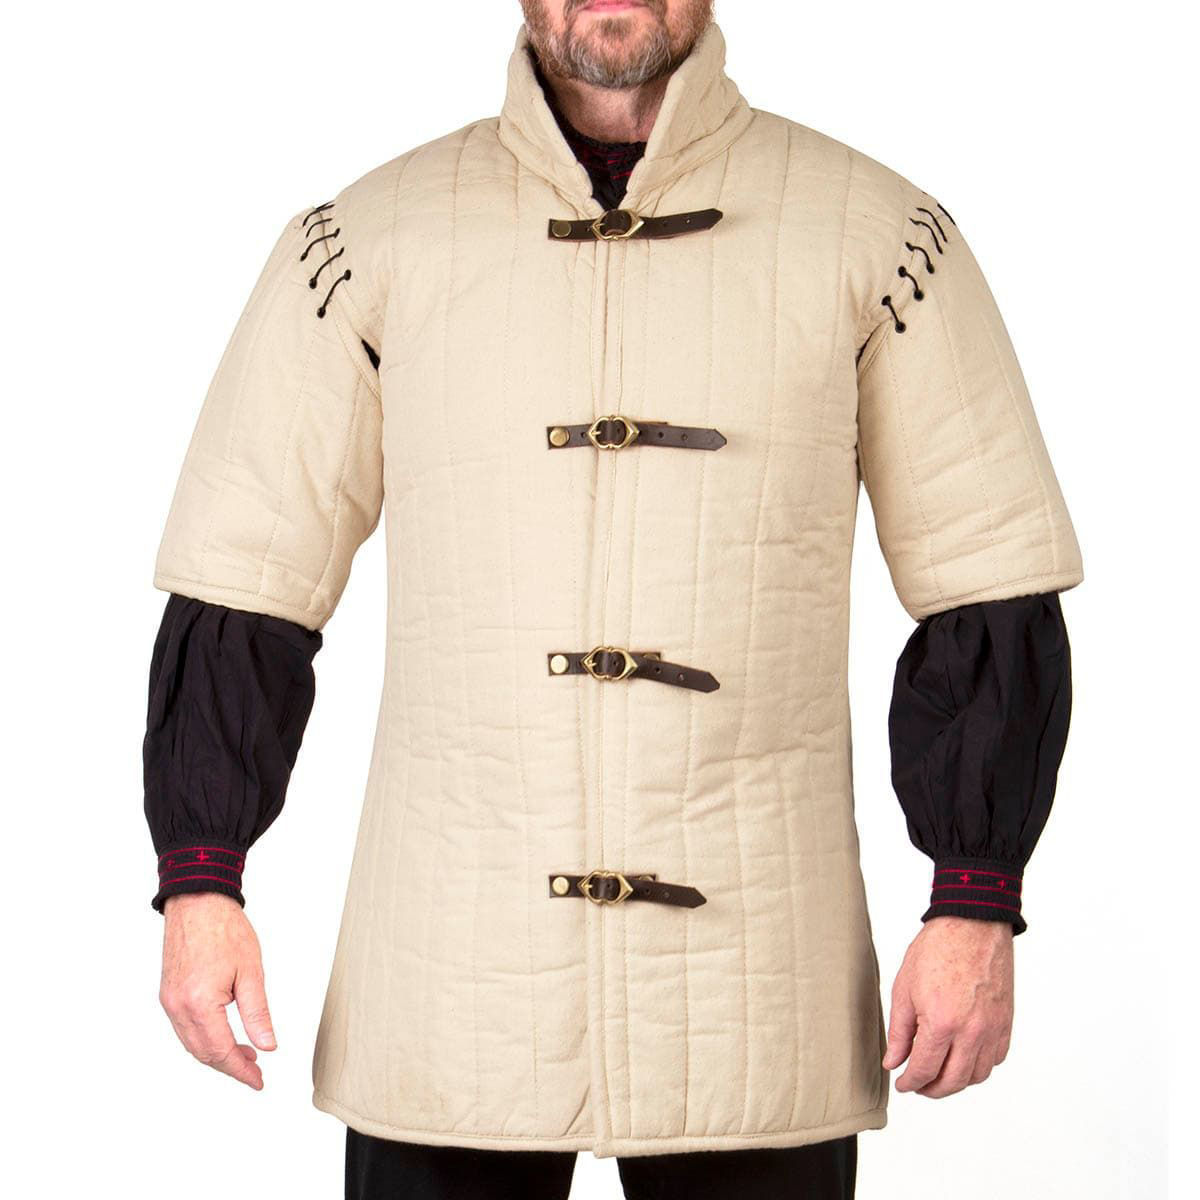 Padded Gambeson With Interchangeable Sleeves and Front Buckle Closure